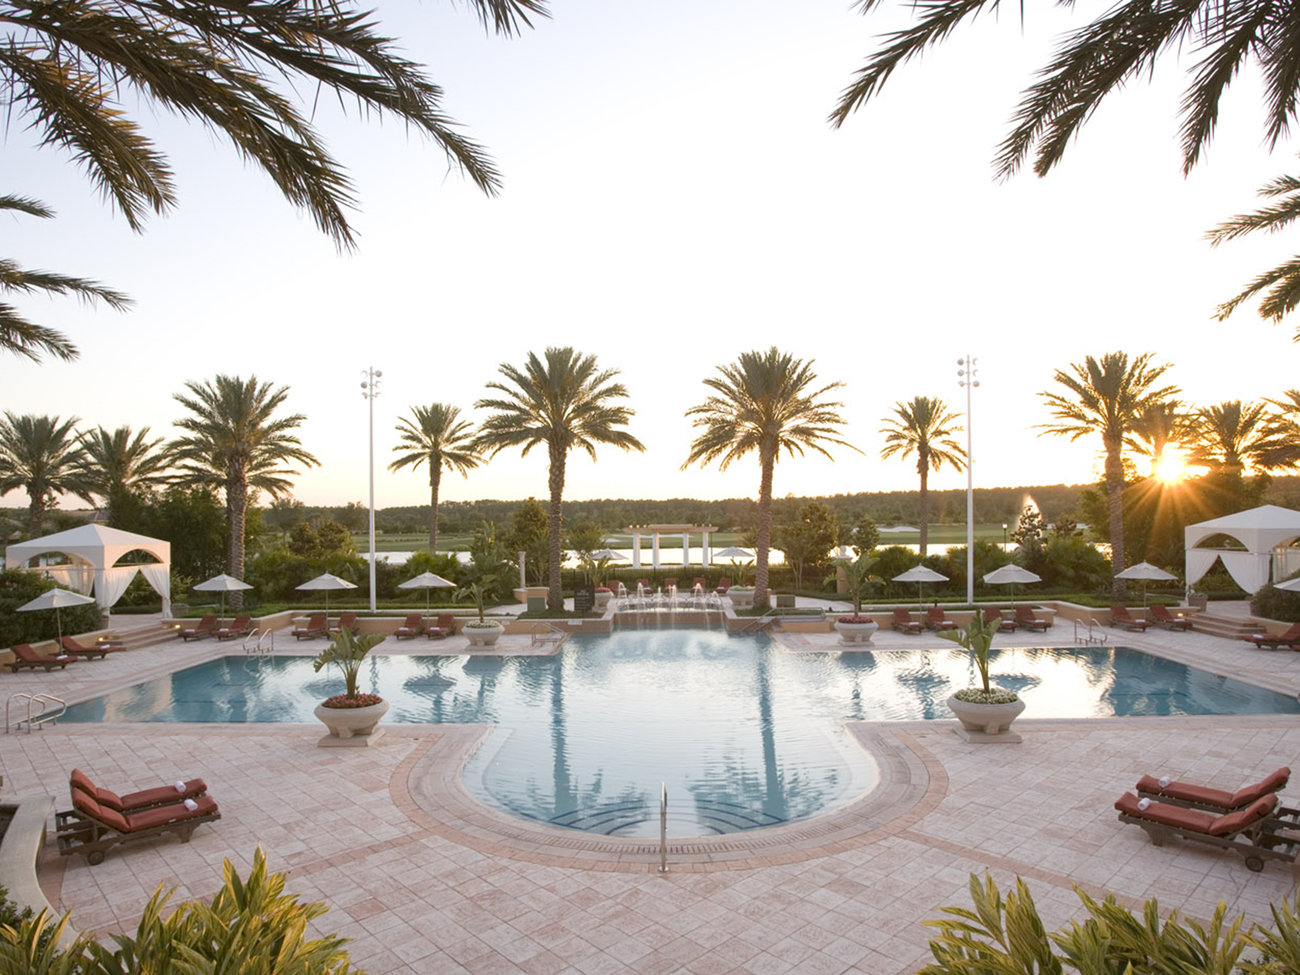 JW Marriott Grande Lakes Hotel in Orlando